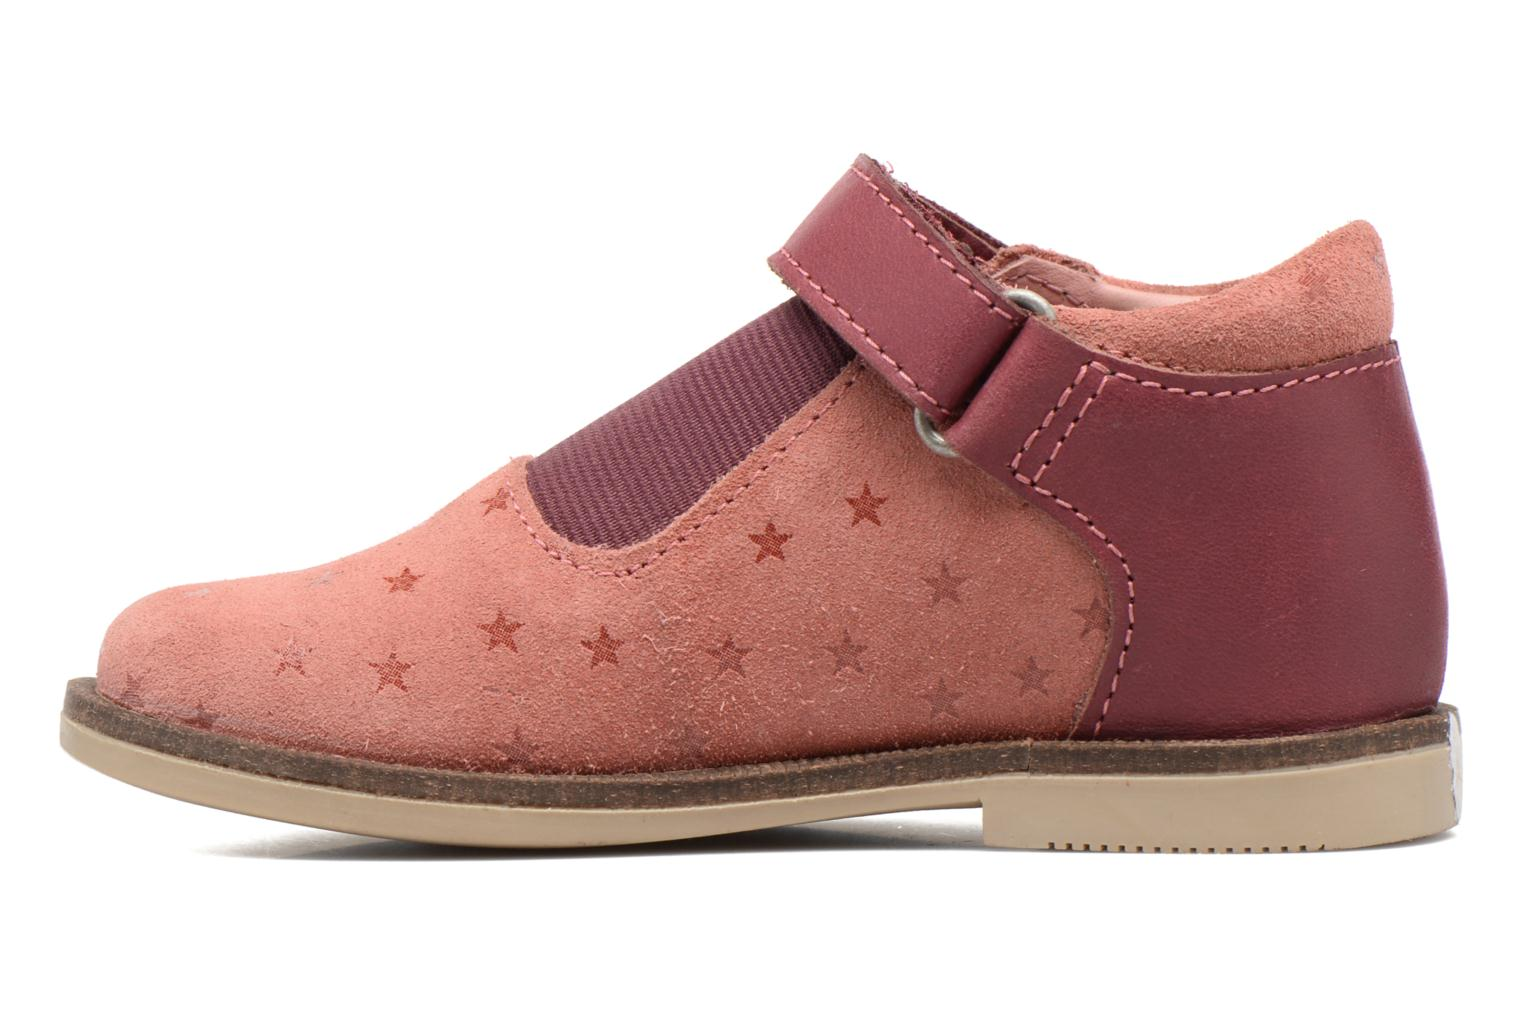 Chaussures à scratch Kickers Moly Rose vue face